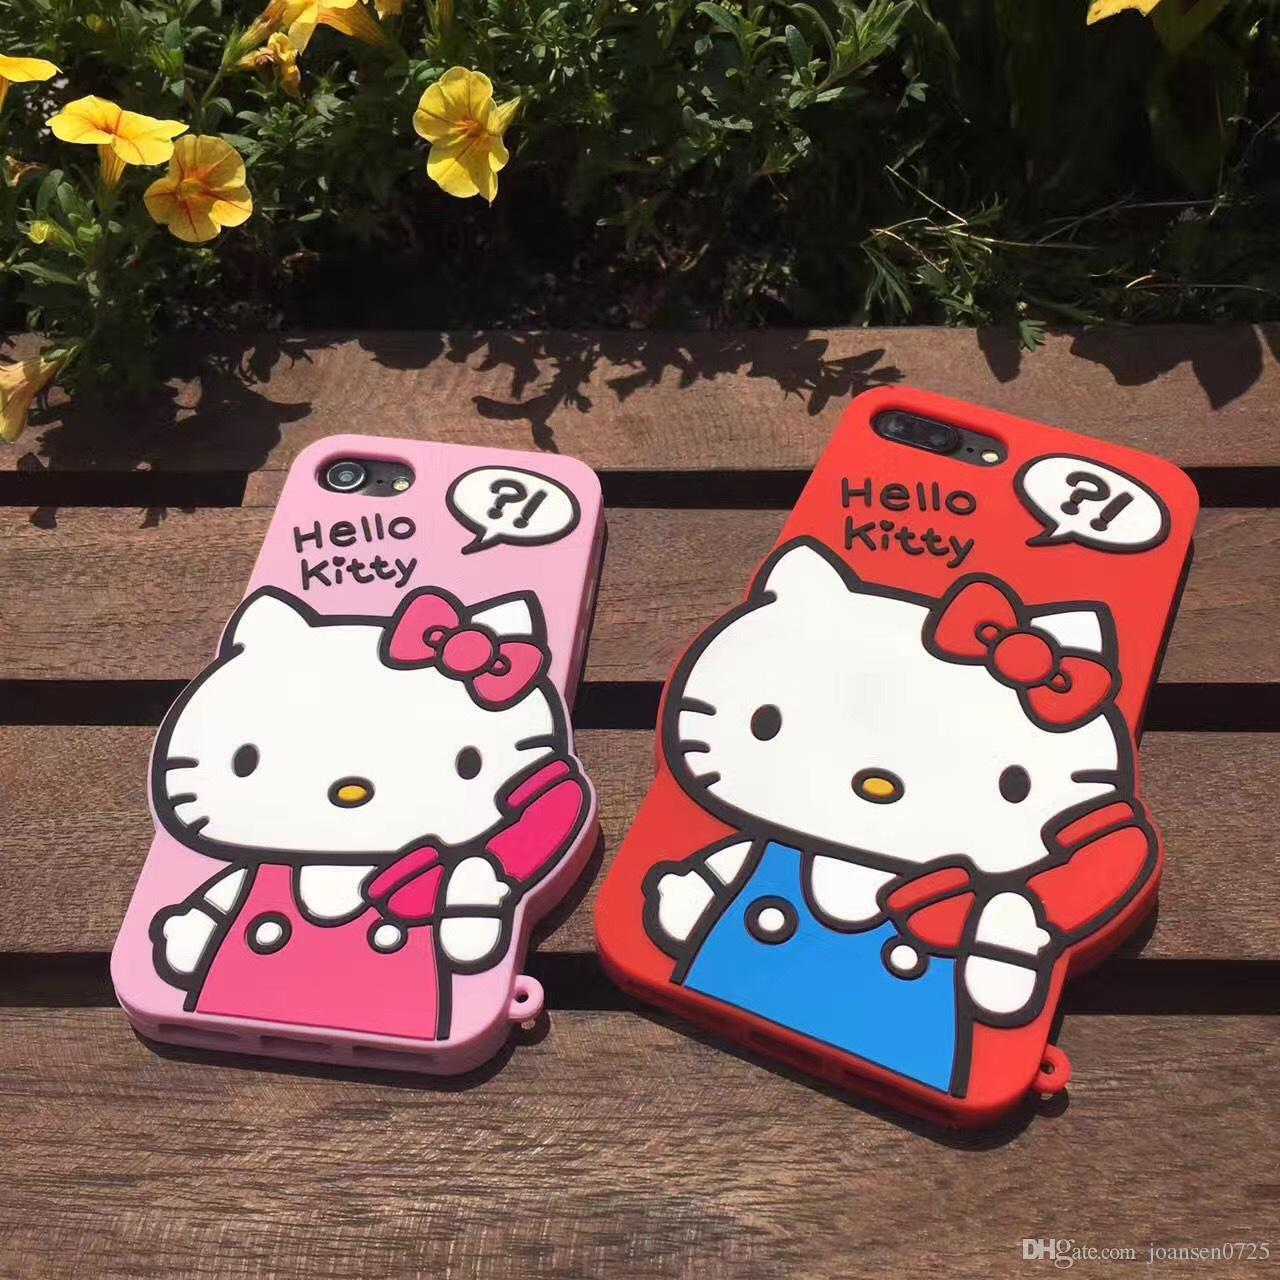 For iPhone 7 case 3D cute cartoon fashion Hello Kitty Soft silicone Phone Case back protective Cover shell For iPhone 6S 7 Plus 5S